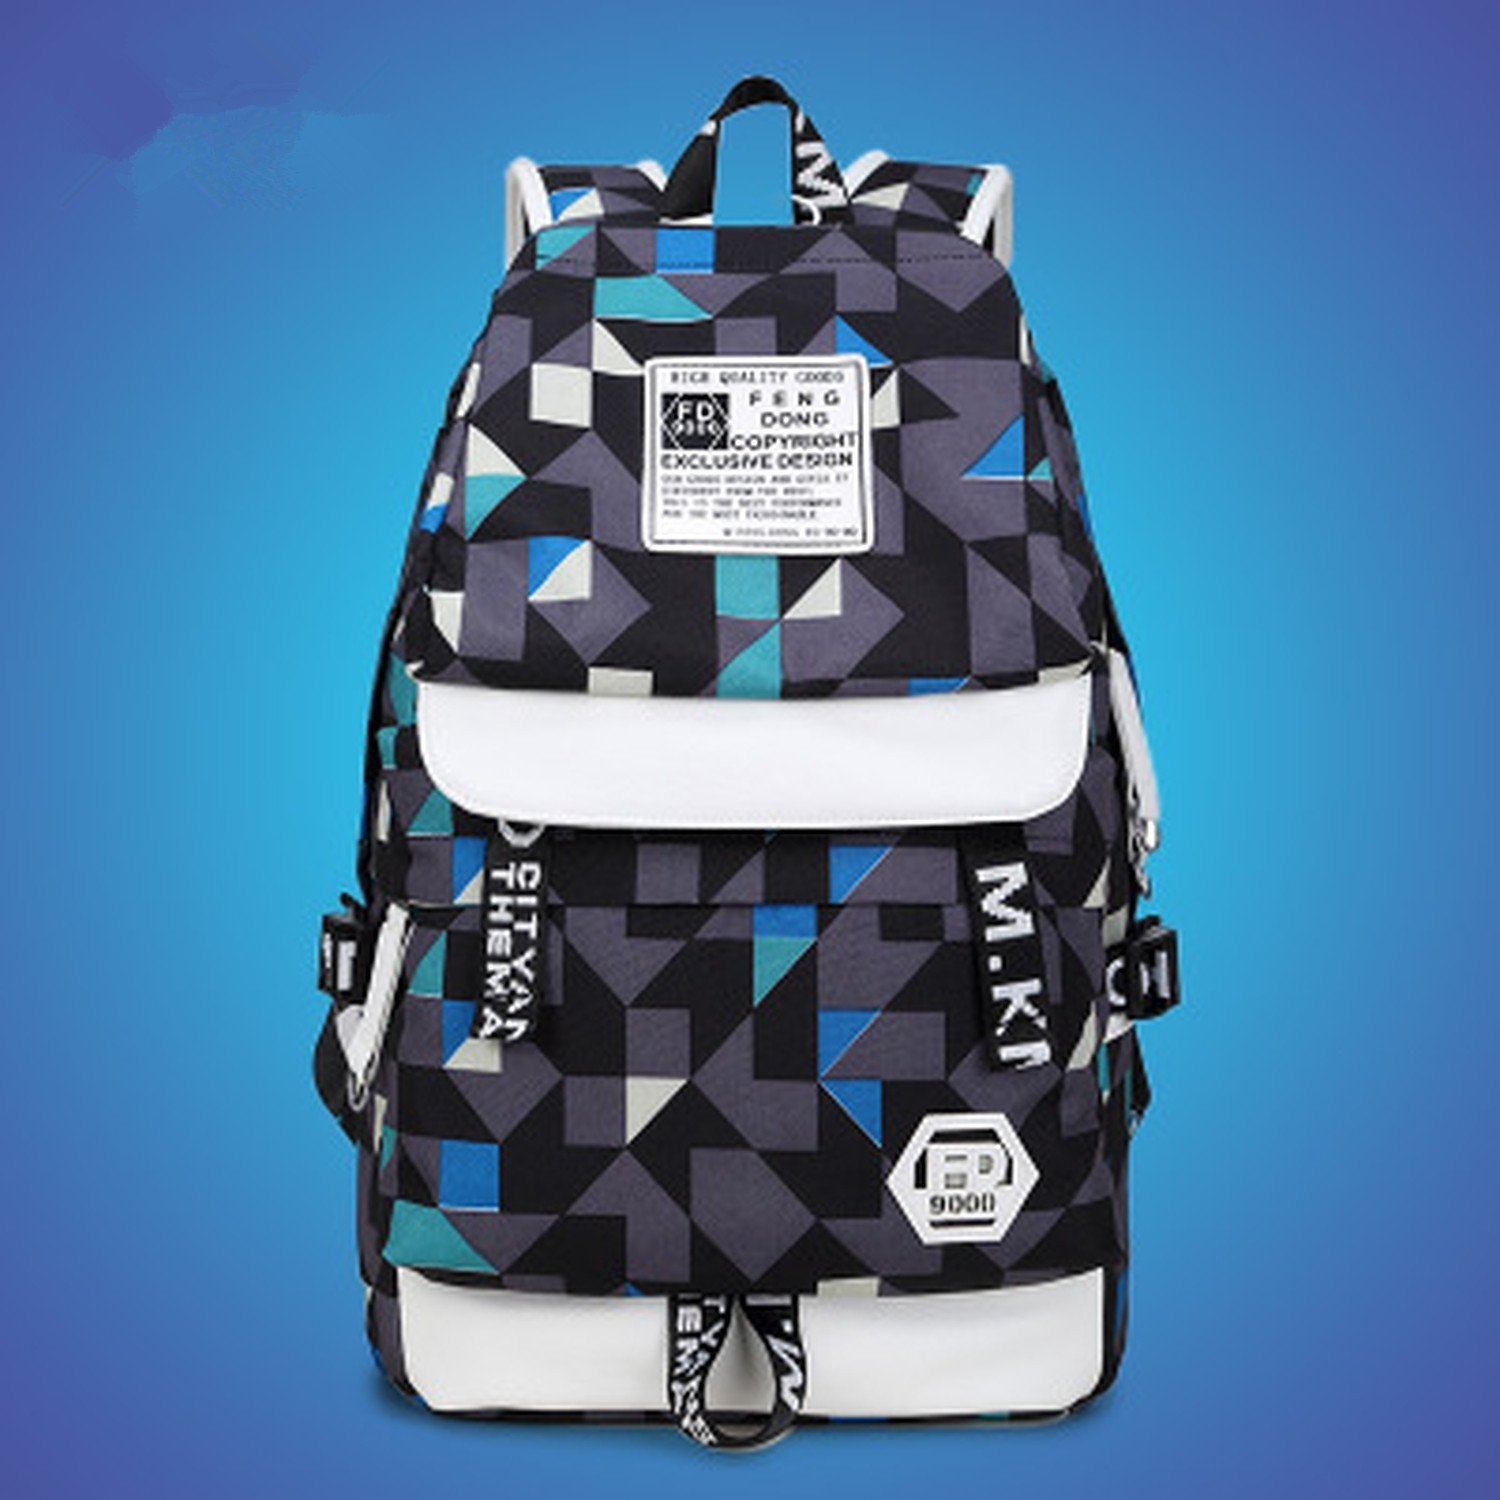 e3abbcbe685 Amazon.com   Printed Women Backpack Best Travel Bag Cute Adolescence Female  Backpack Knapsack Student Girl Shoulder Bag Geometric Backpack 15 Inches ...